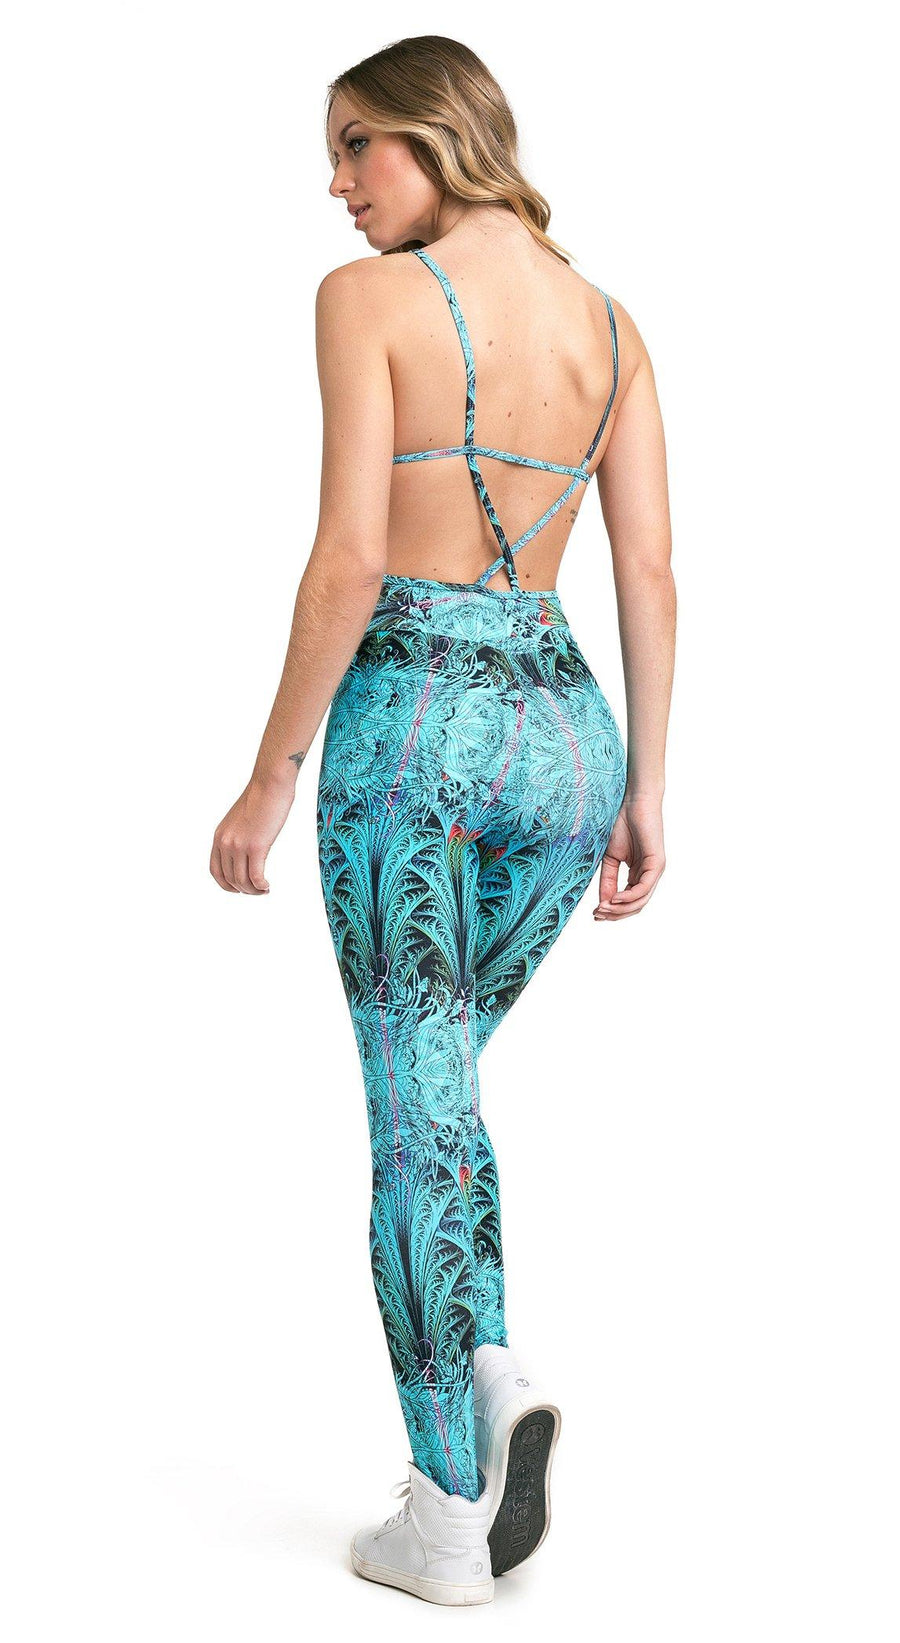 Brazilian Workout Jumpsuit - Starfish Printed One Piece